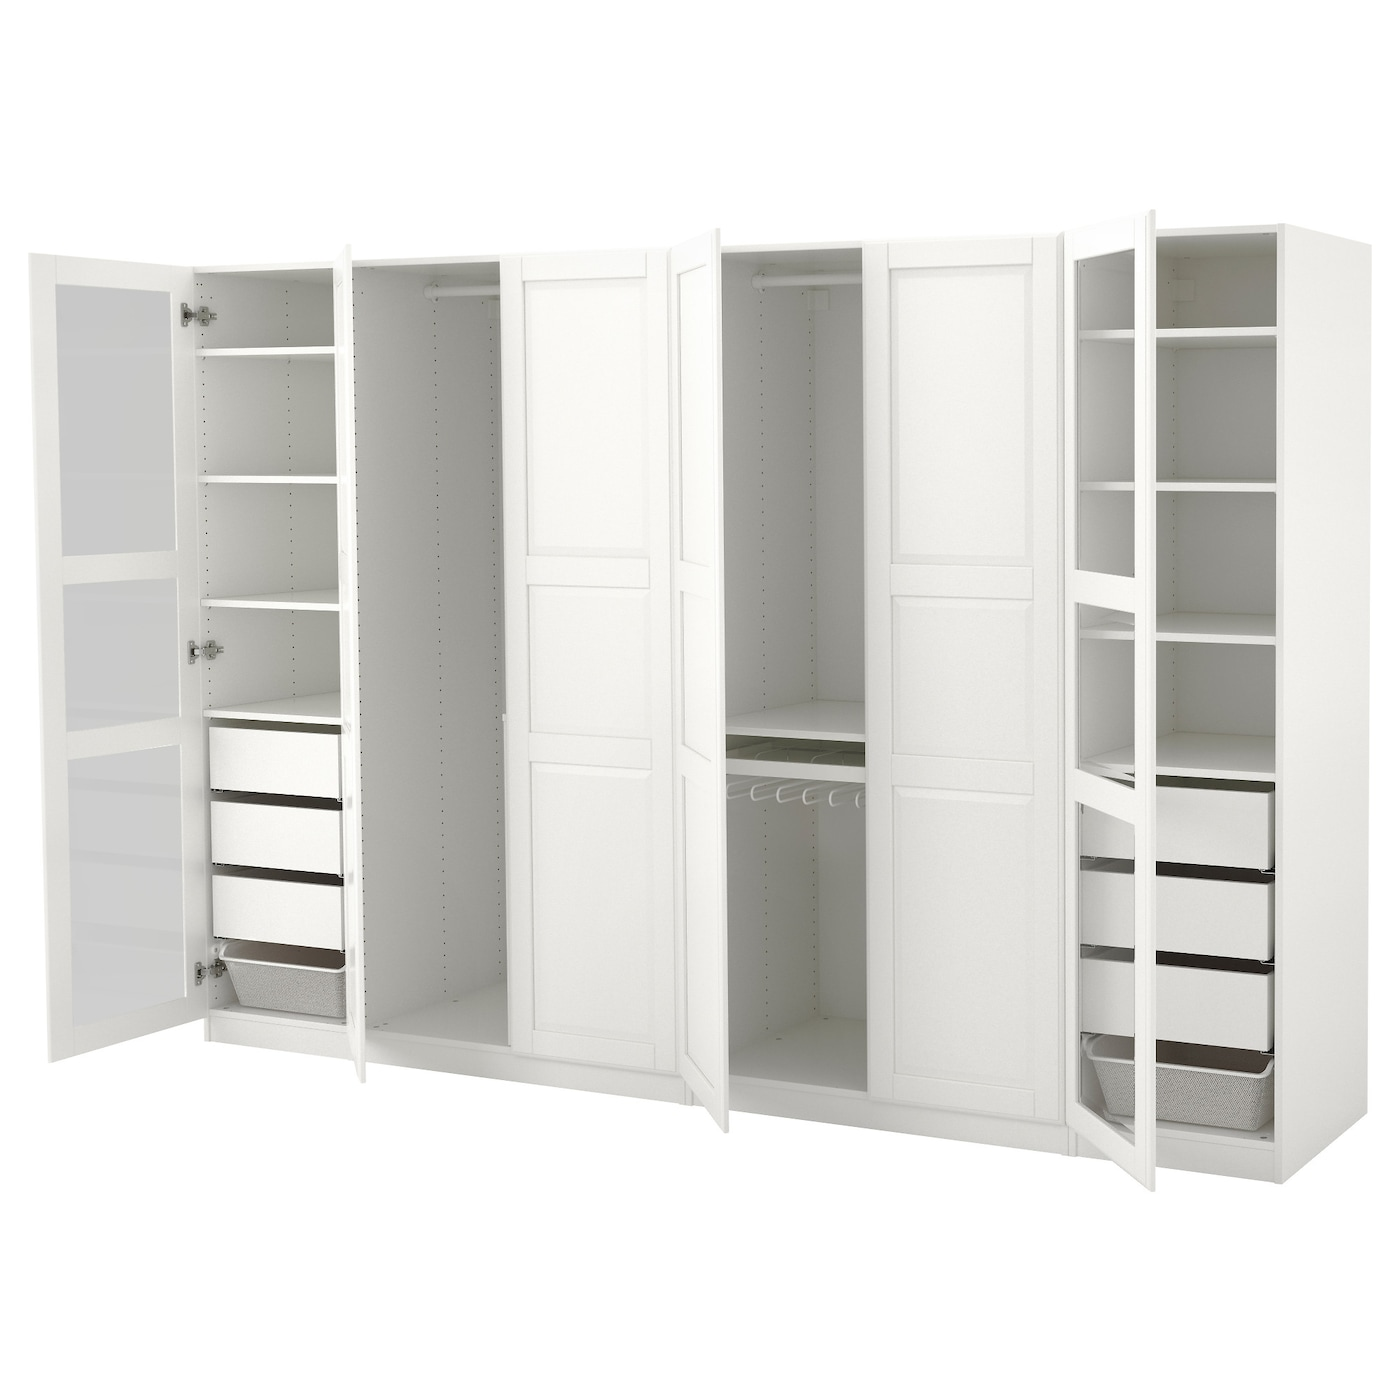 pax armoire penderie blanc tyssedal tyssedal verre 300 x. Black Bedroom Furniture Sets. Home Design Ideas